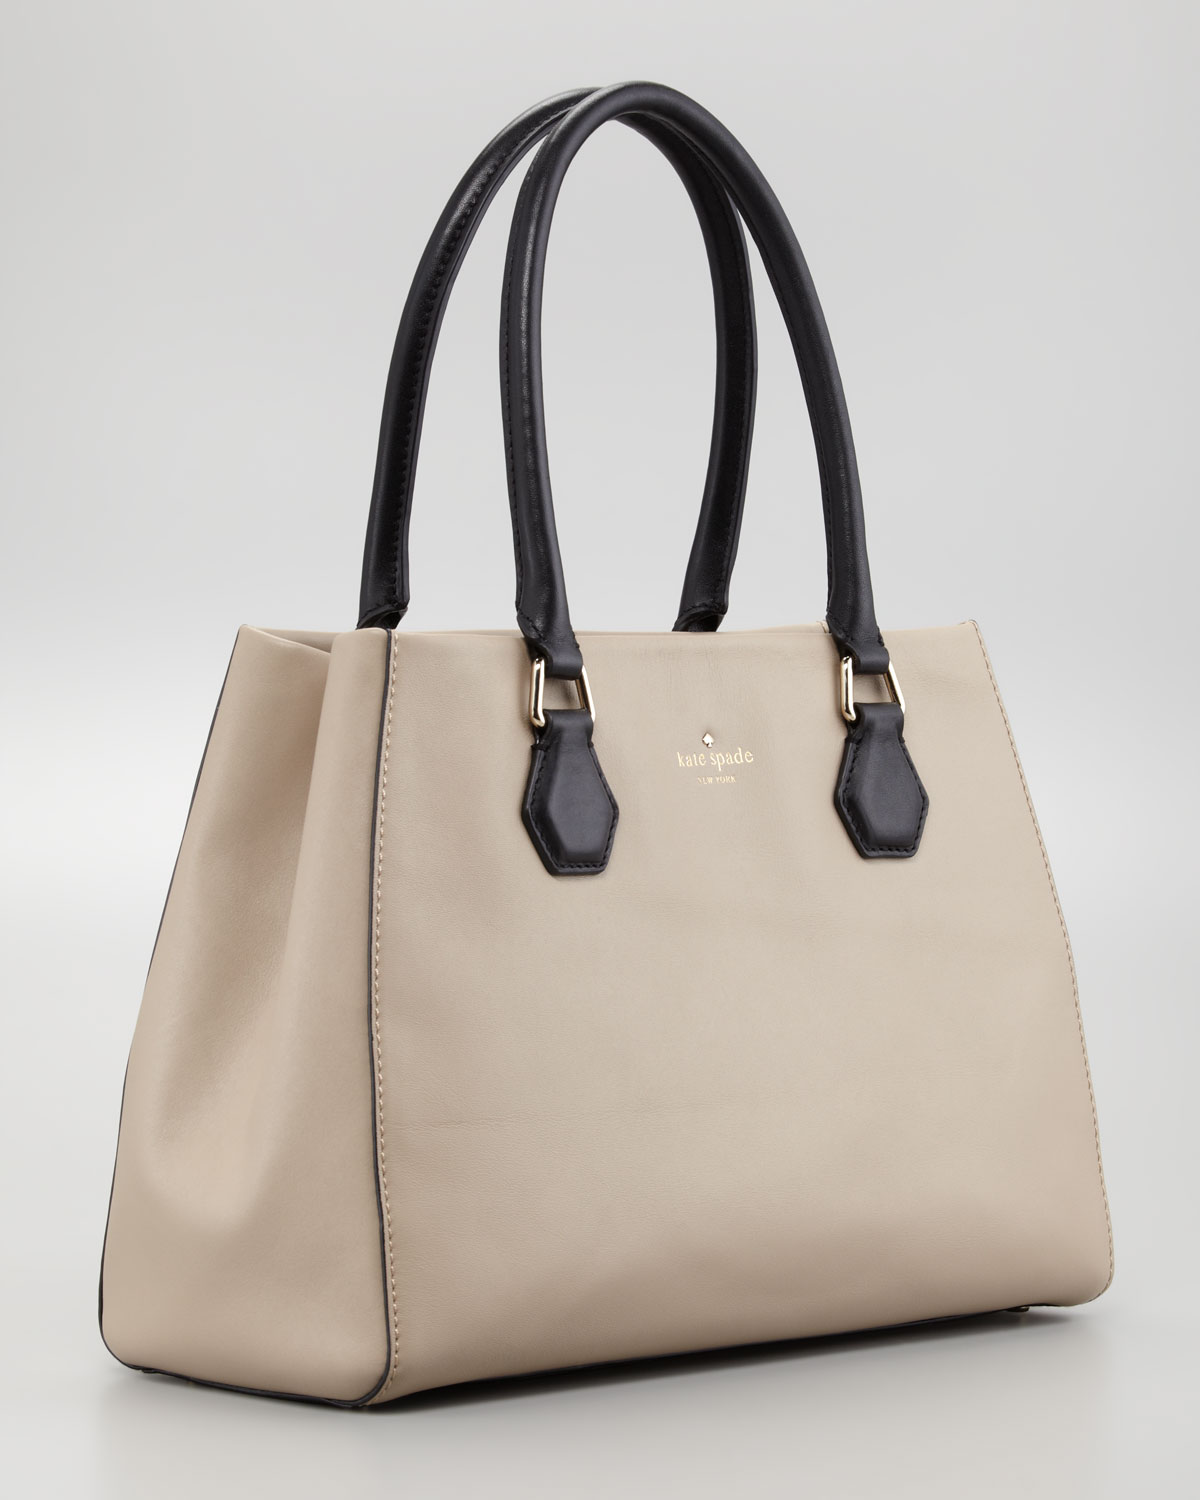 ysl bags on sale - kate-spade-dark-chino-catherine-st-louise-tote-bag-product-3-6384843-610399557.jpeg